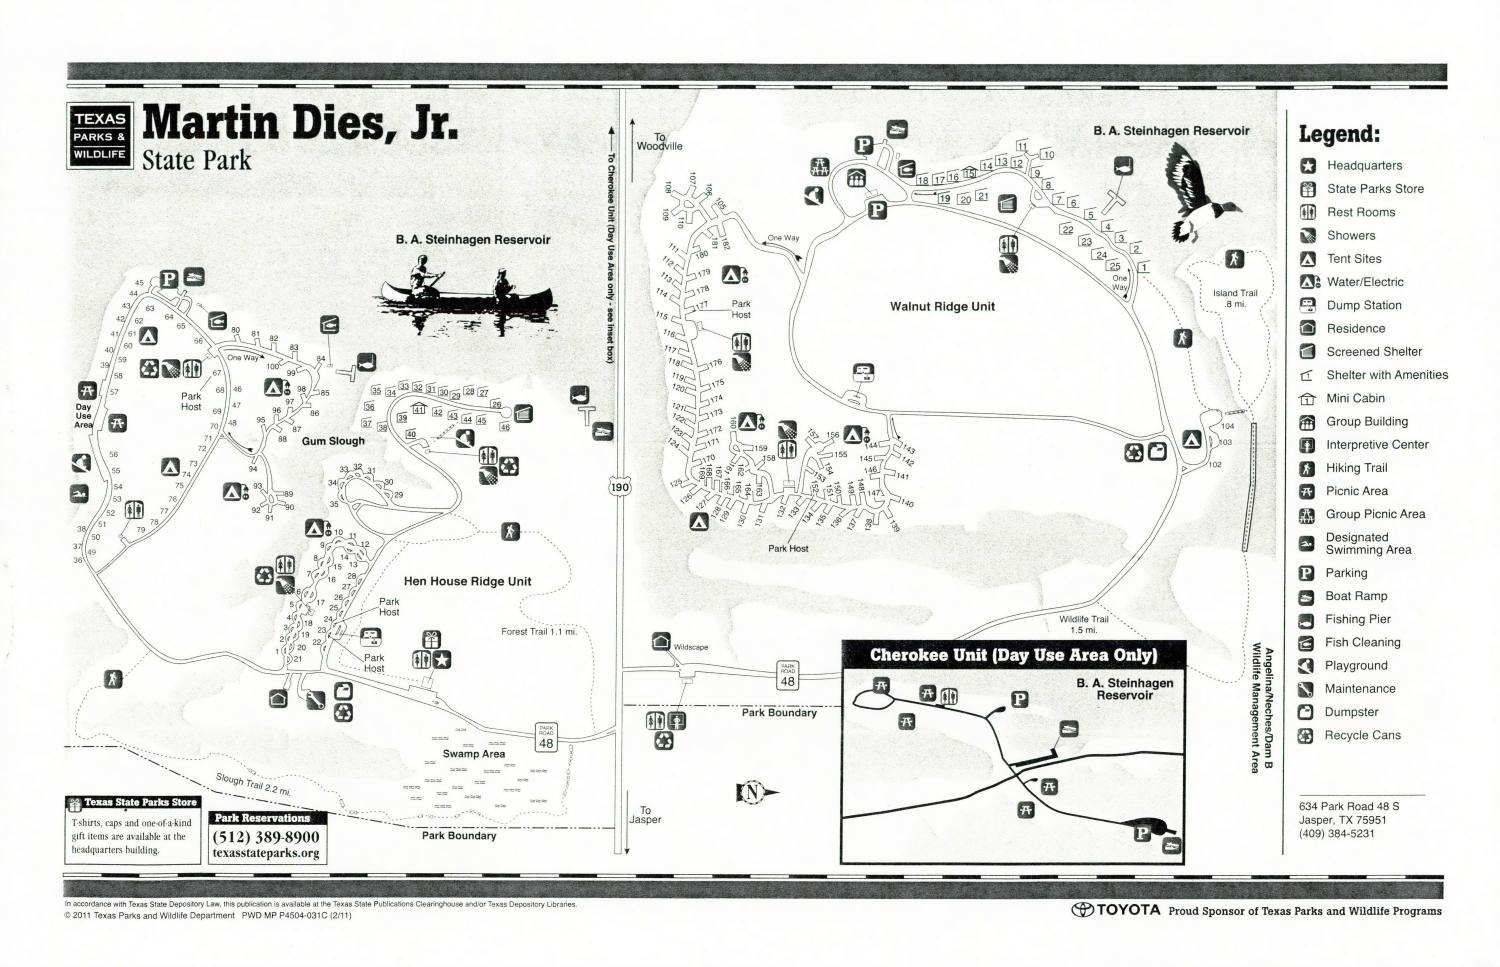 Marin Dies, Jr. State Park, Map of the Marin Dies, Jr. State Park outlining hiking trails and highlighting activities, facilities, and other features such as bathrooms, lodgings, water/electric, etc. It also contains general information for the park and for the Texas Parks and Wildlife Department. Additionally, there are various advertisements, including one with information about the Texas State Parks Pass.,